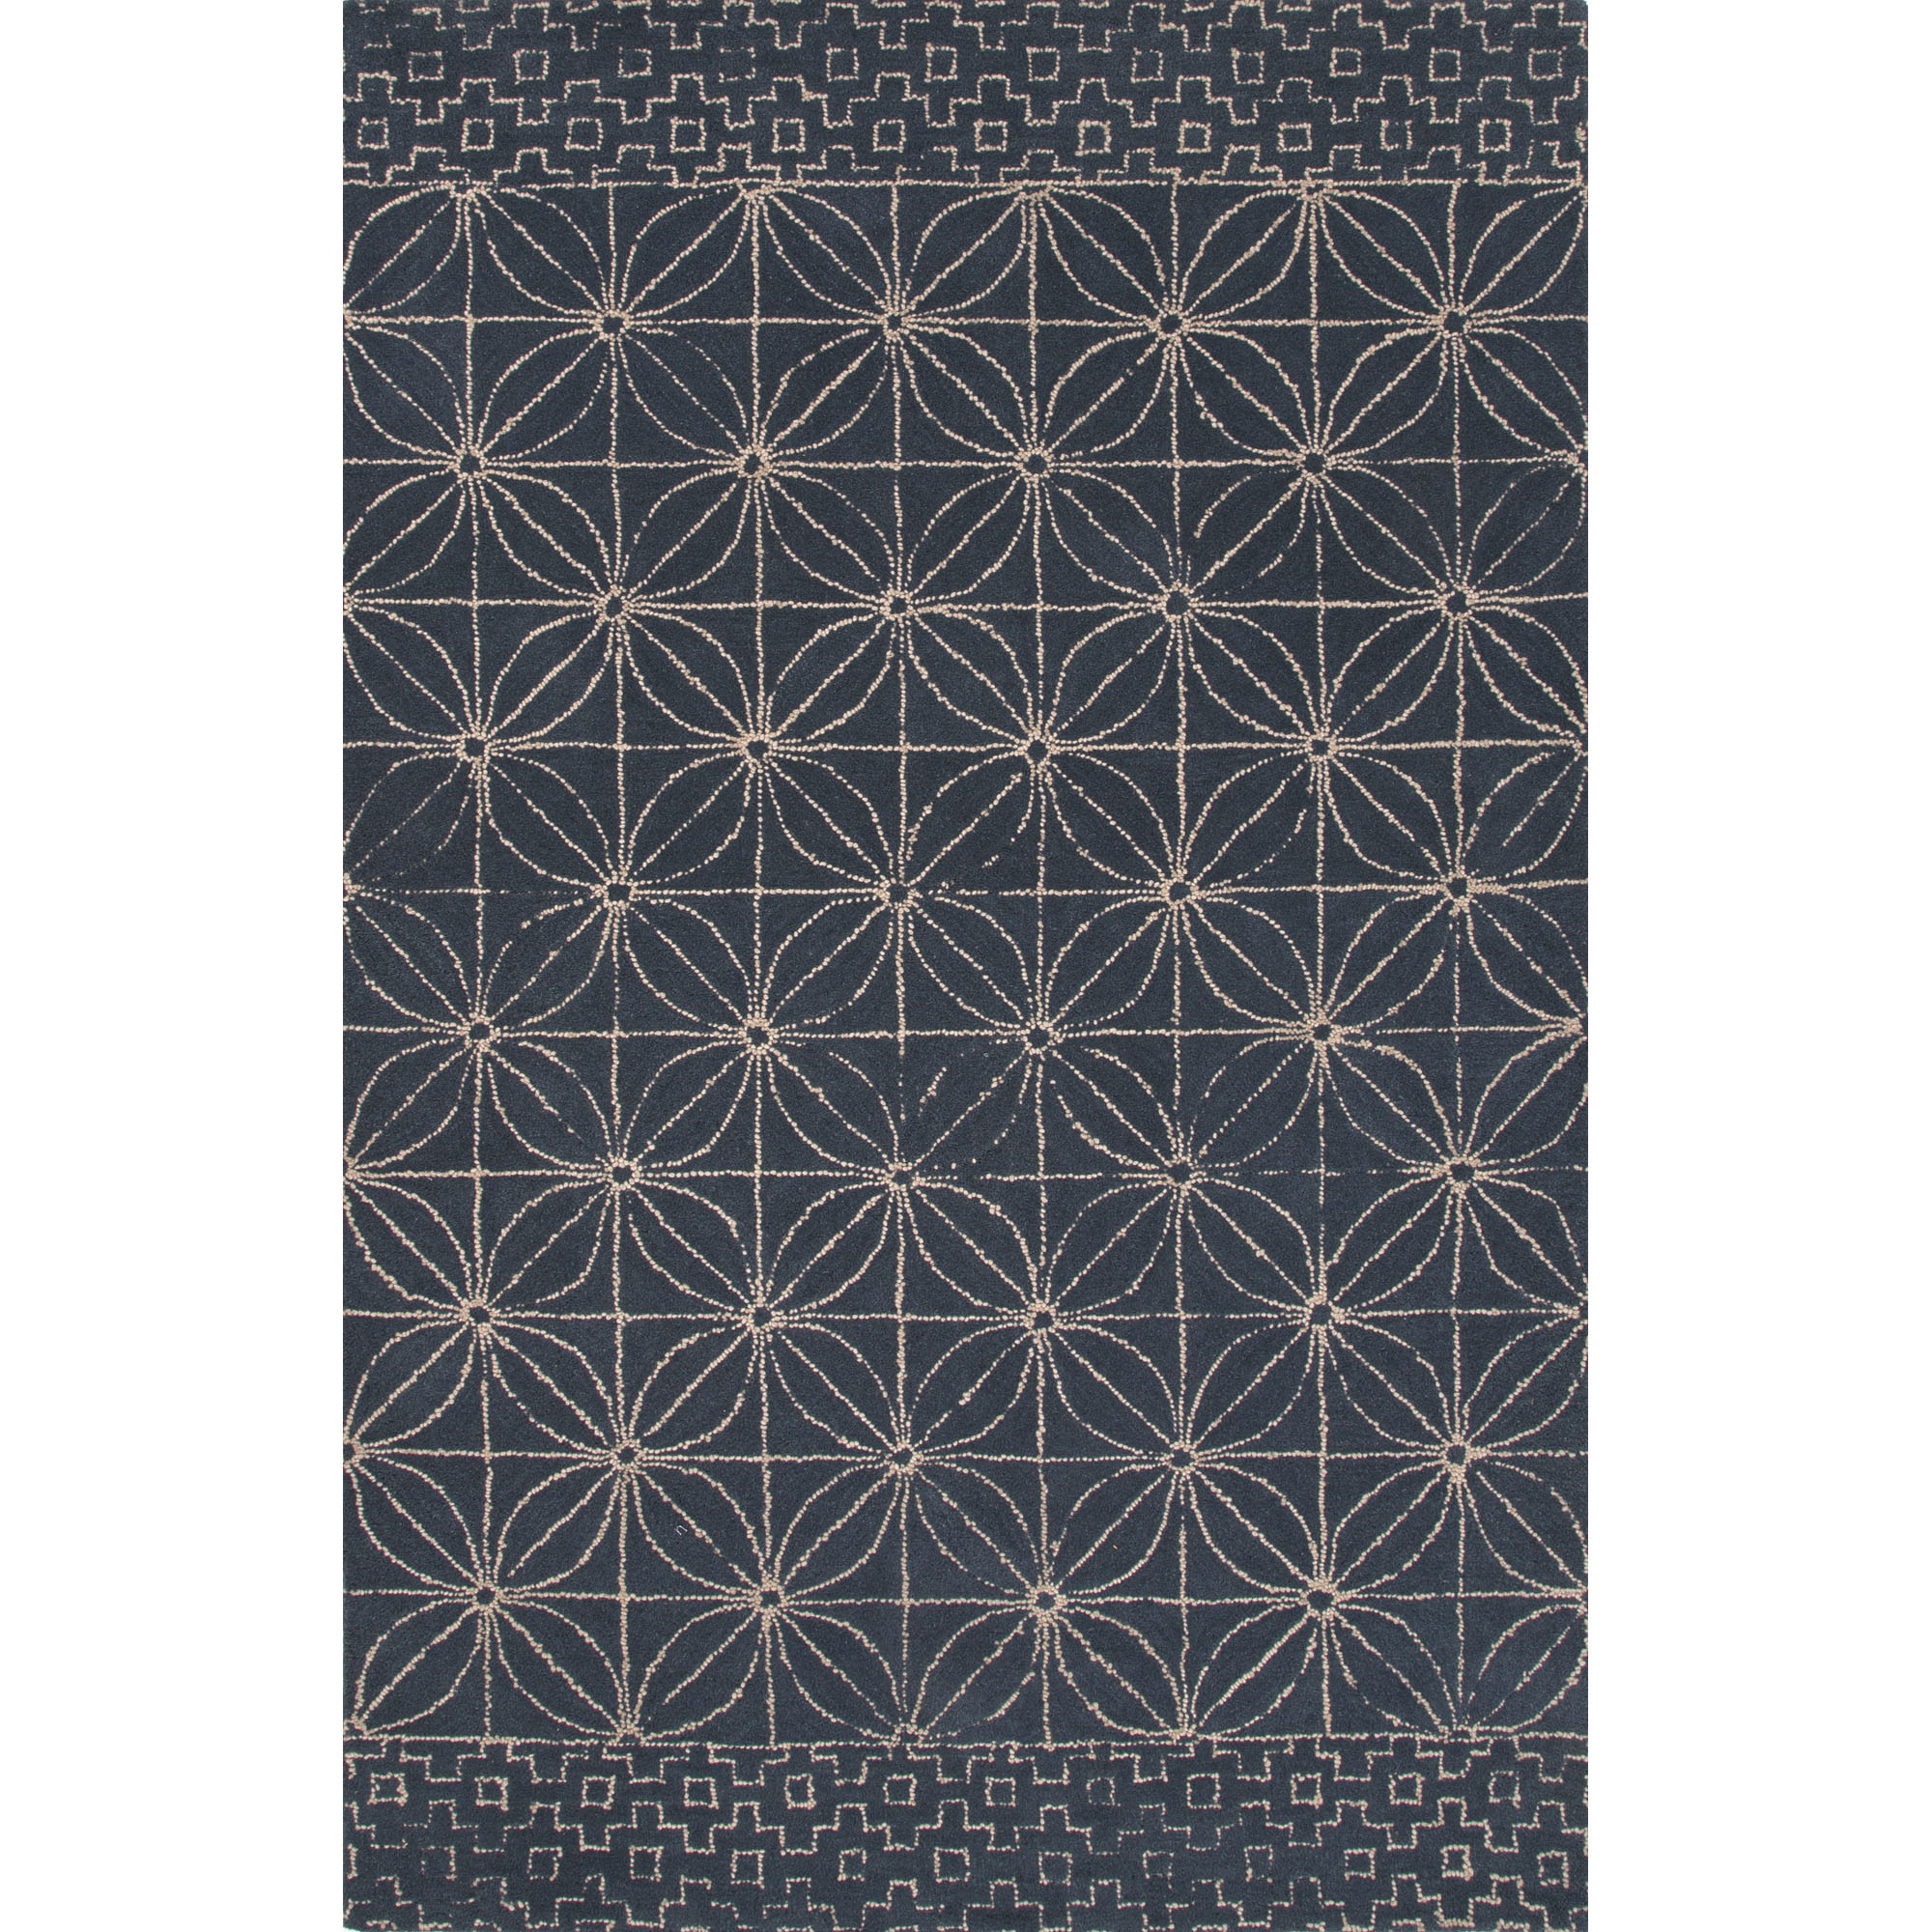 JAIPUR Rugs Traditions Made Modern Tufted 8 x 11 Rug - Item Number: RUG122191